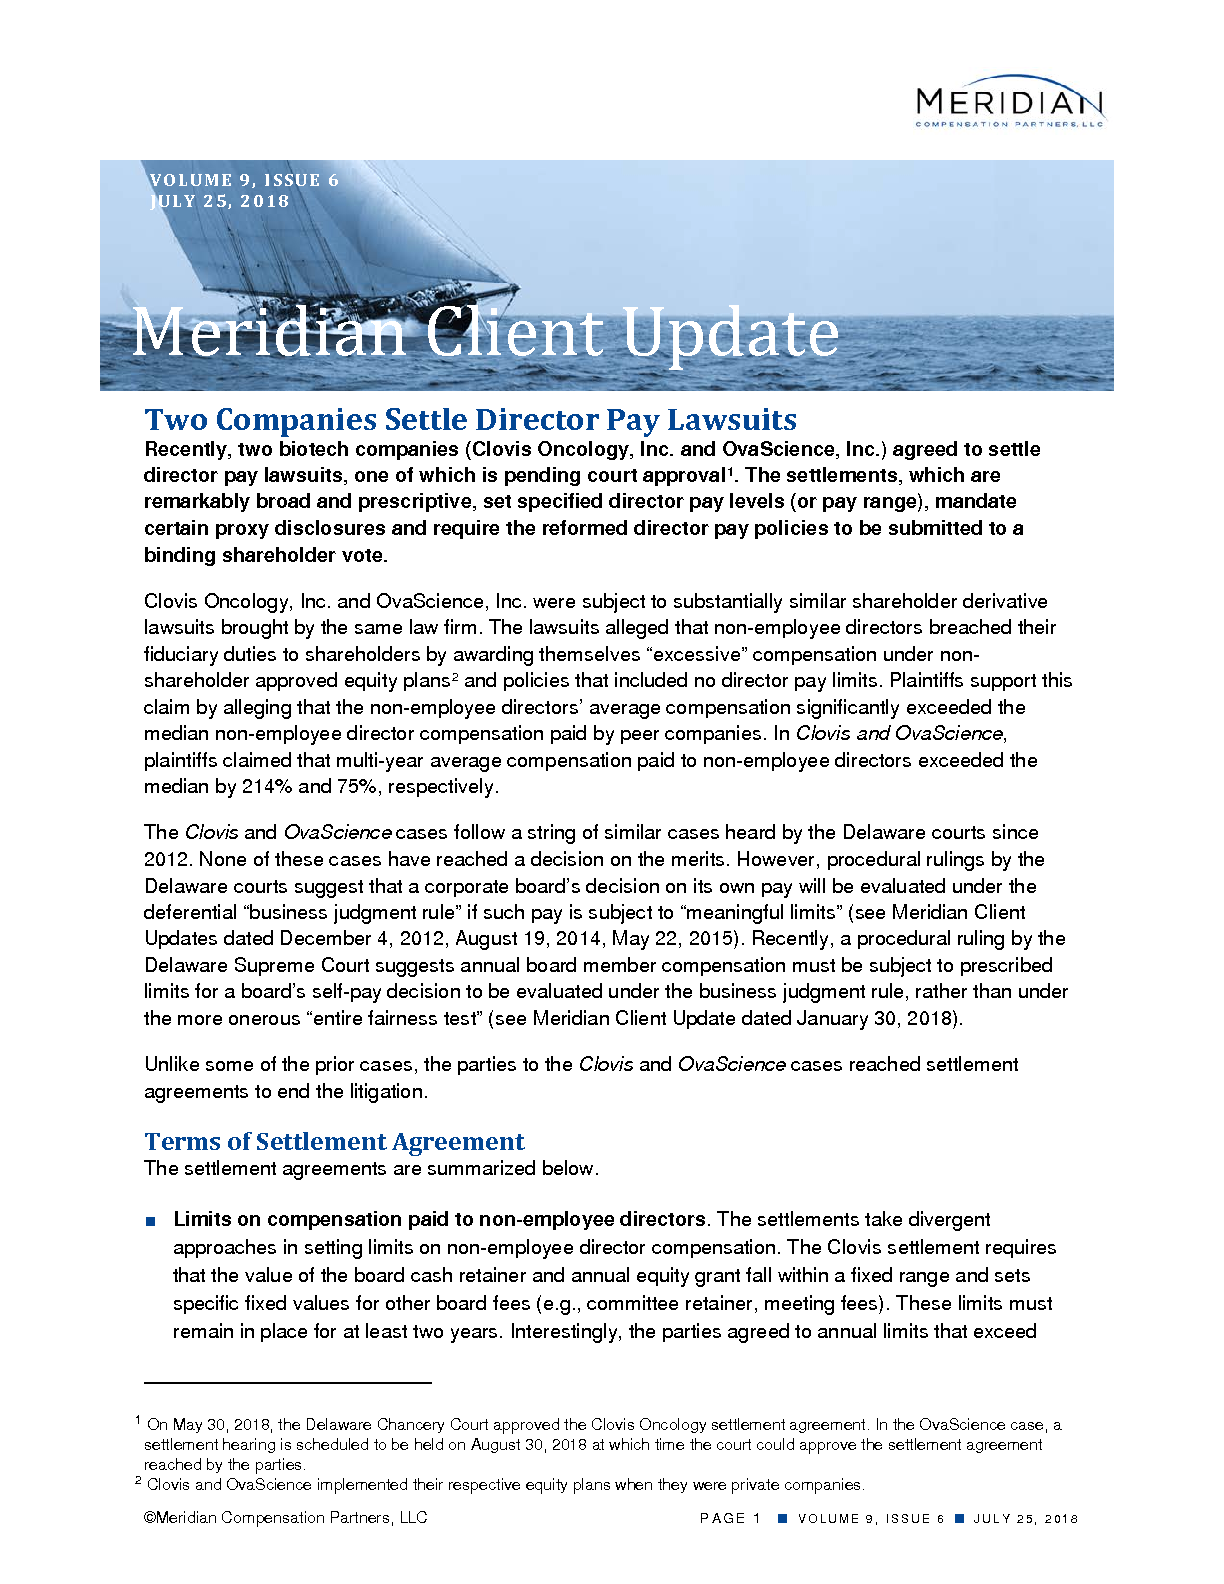 Two Companies Settle Director Pay Lawsuits (PDF)